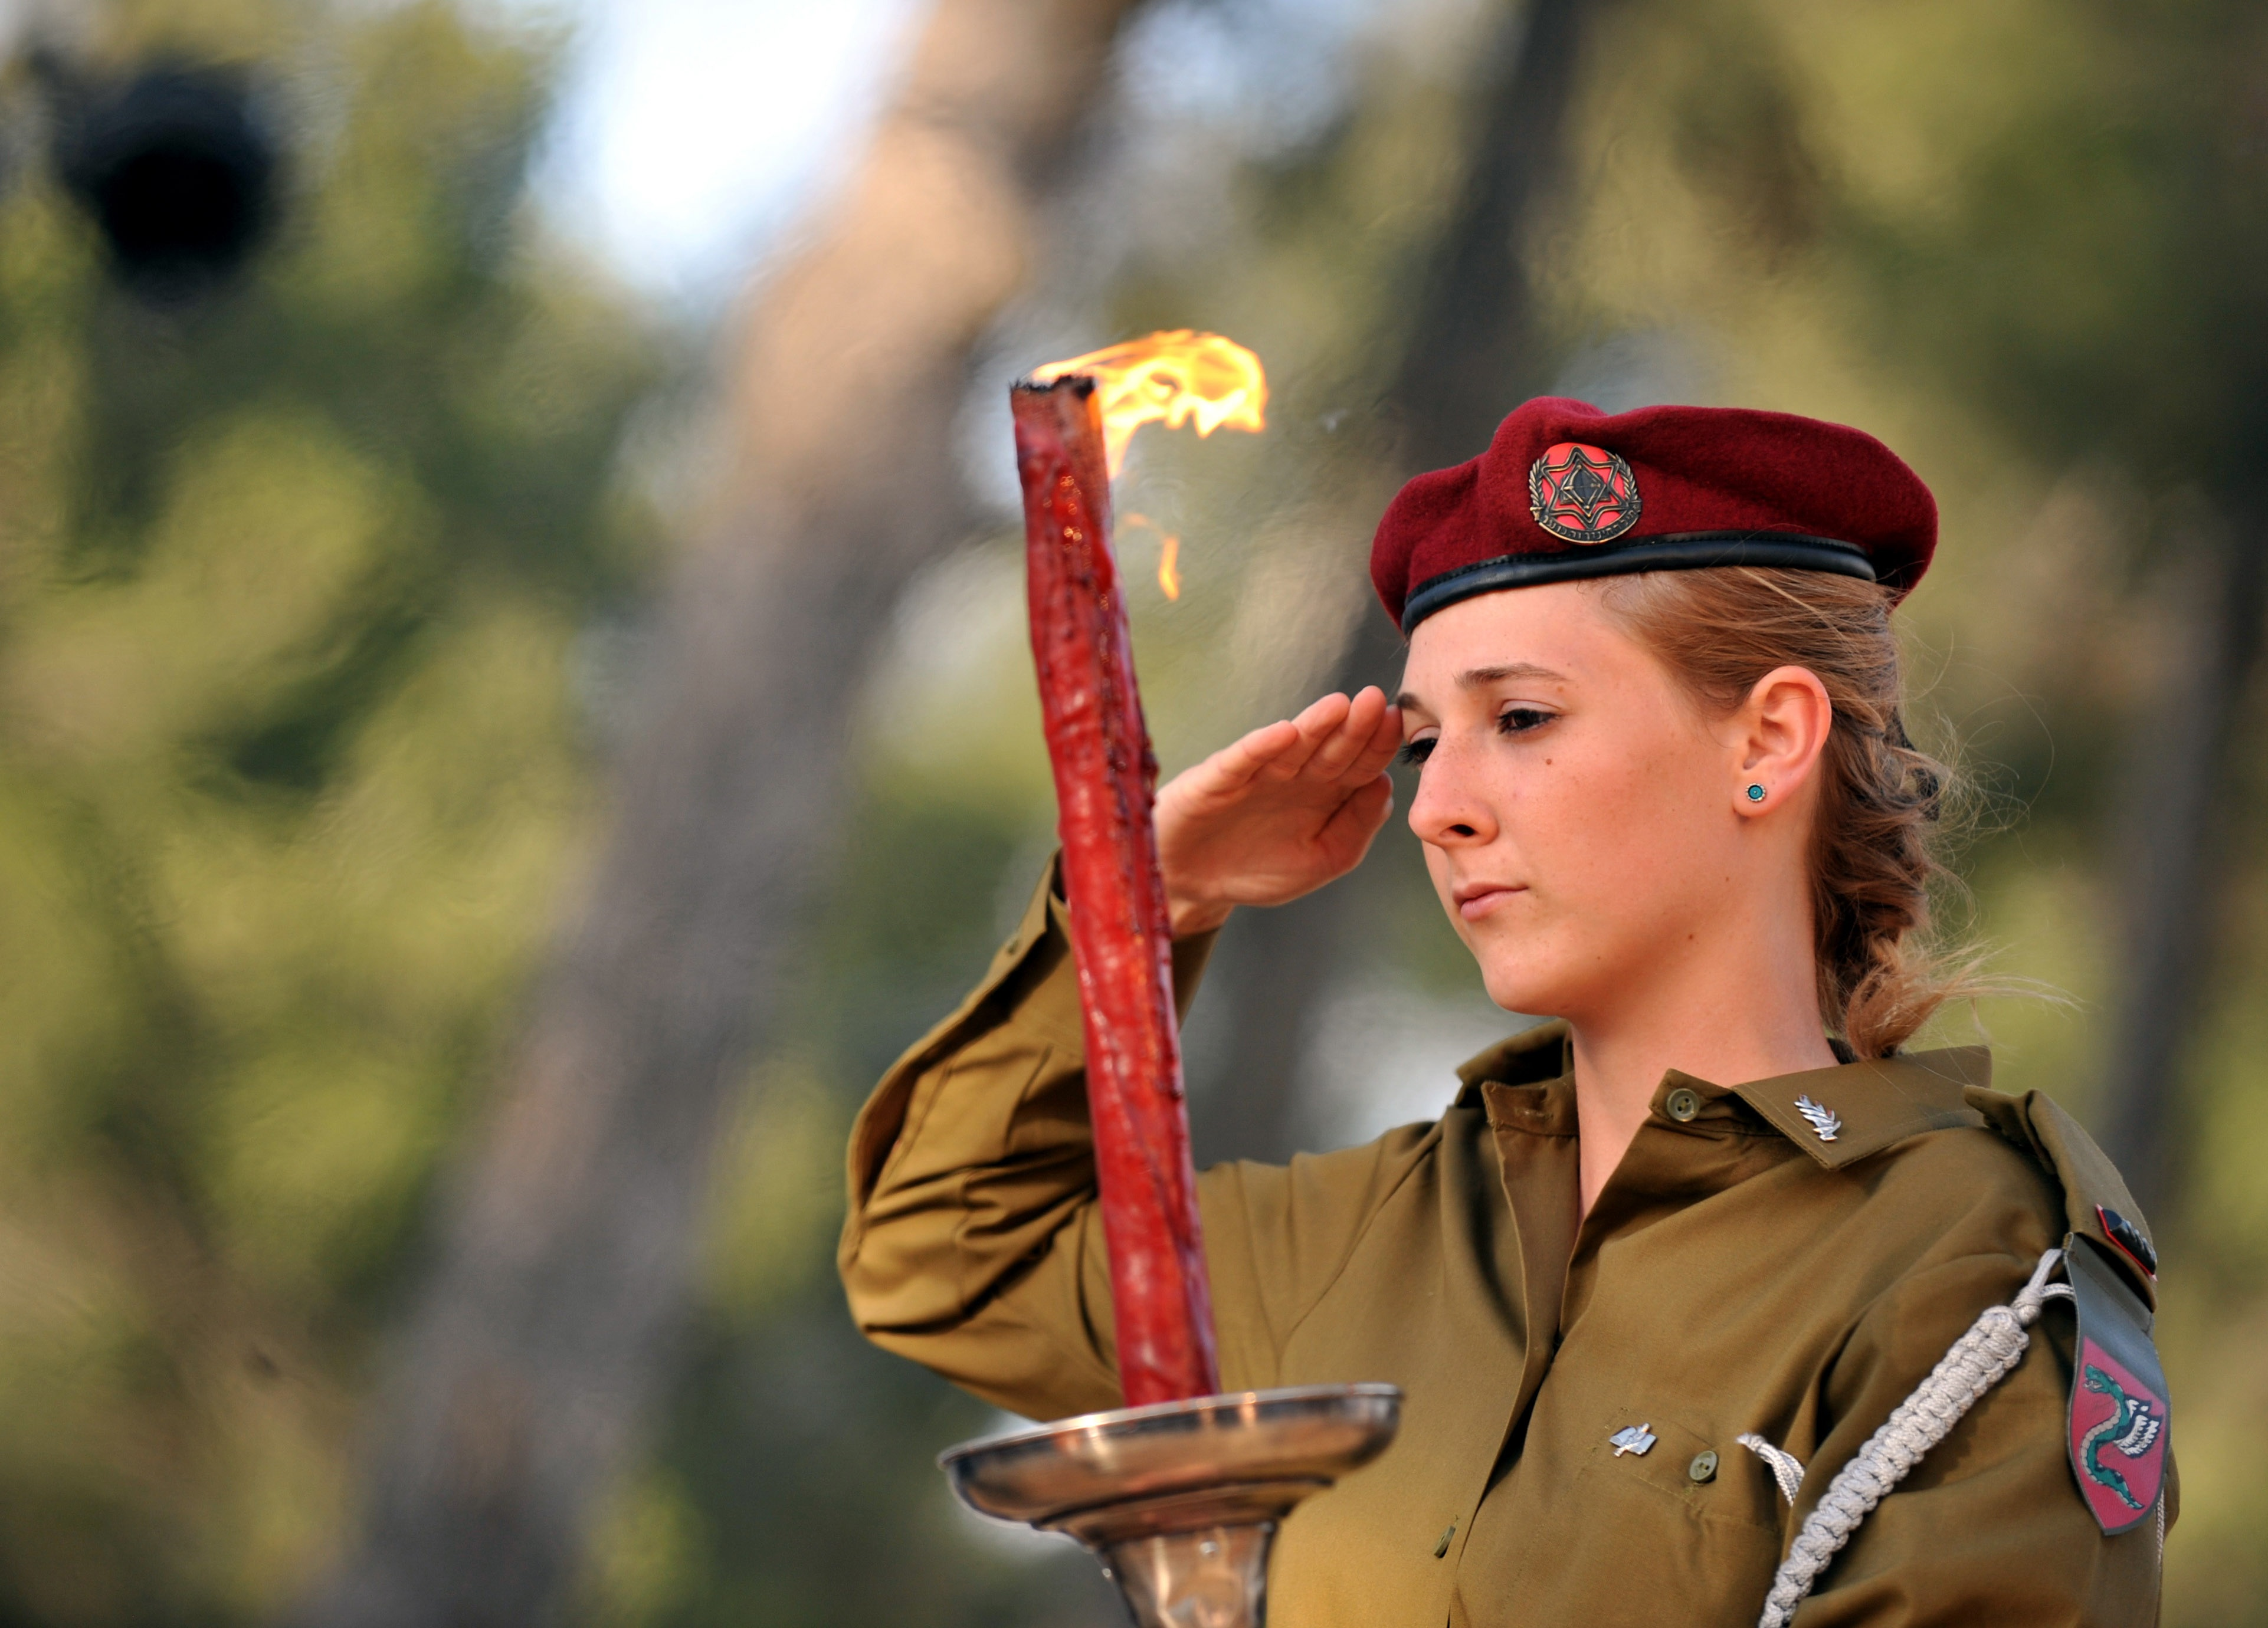 Yin Bogu - Pool/Getty Images. An Israeli soldier lights a torch during the Jerusalem Day ceremony at Ammunition hill May 21, 2009 in Jerusalem, Israel. Israeli Prime Minister Benjamin Netanyahu stated that all of Jerusalem will remain Israel's capital amidst protests at the Damascus gate of the Old City of Jerusalem wall by eastern Jerusalem Arabs and their supporters.